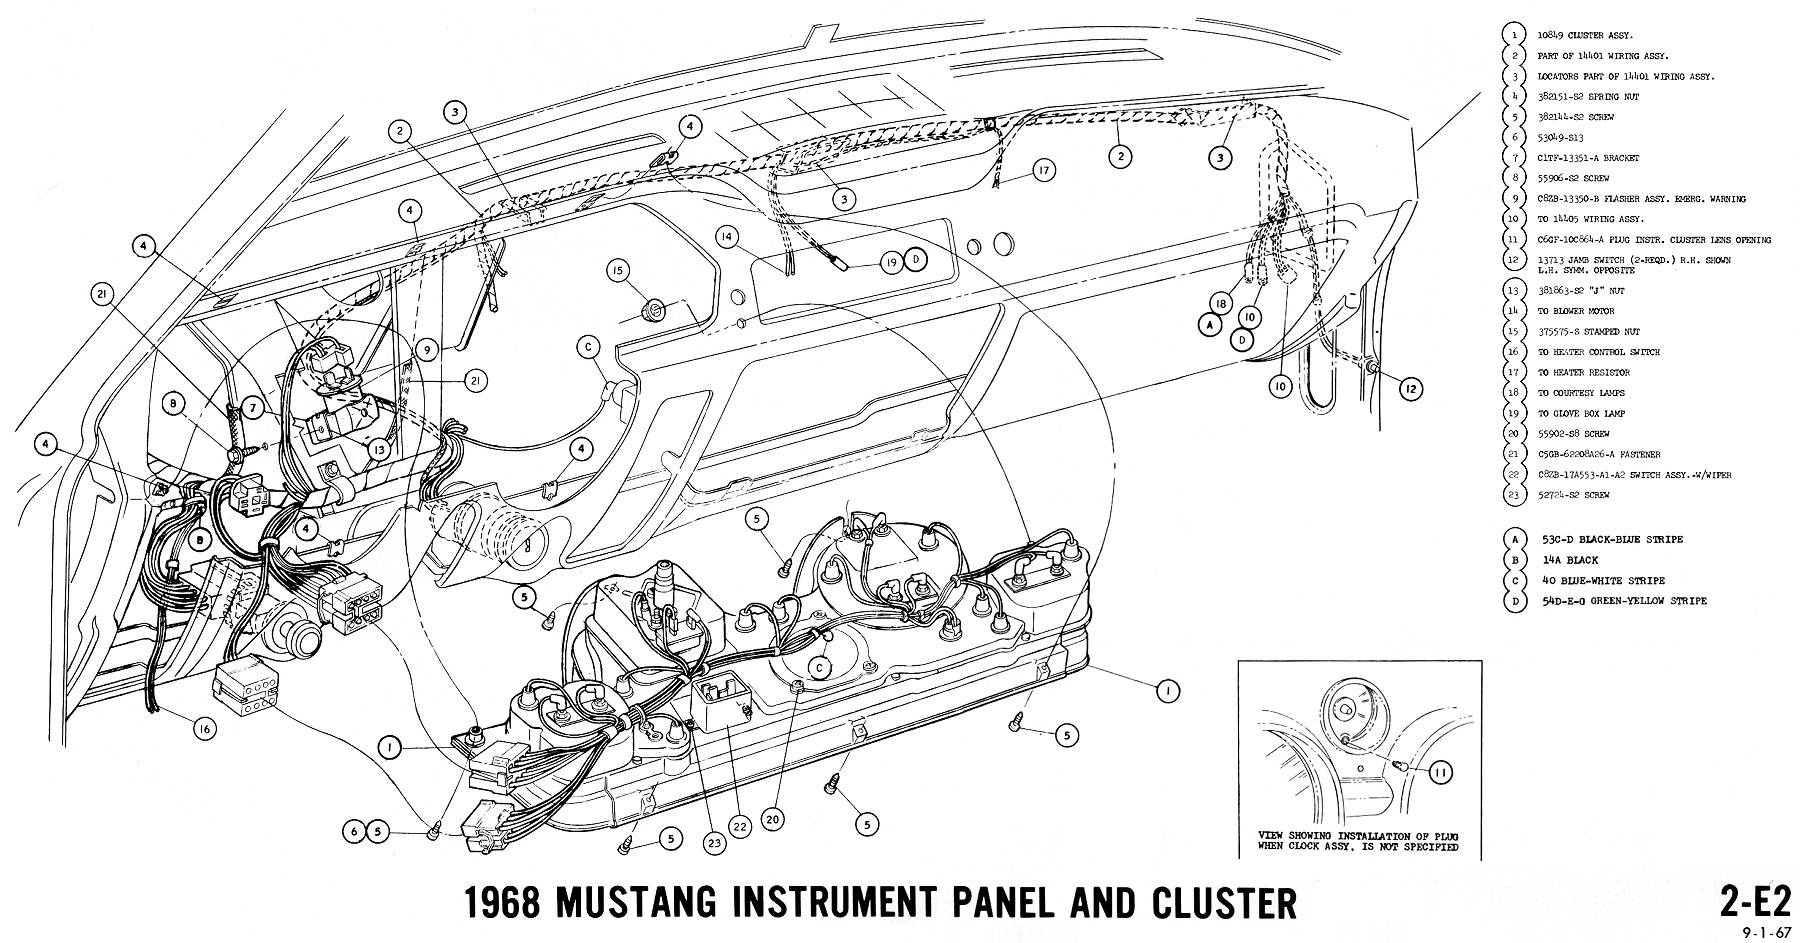 1968 mustang dash wiring diagram wiring diagram blog data 2003 Yukon Dash Schematic 1969 mustang dash wiring diagram data wiring diagram 67 mustang dash wiring diagram 1966 mustang instrument